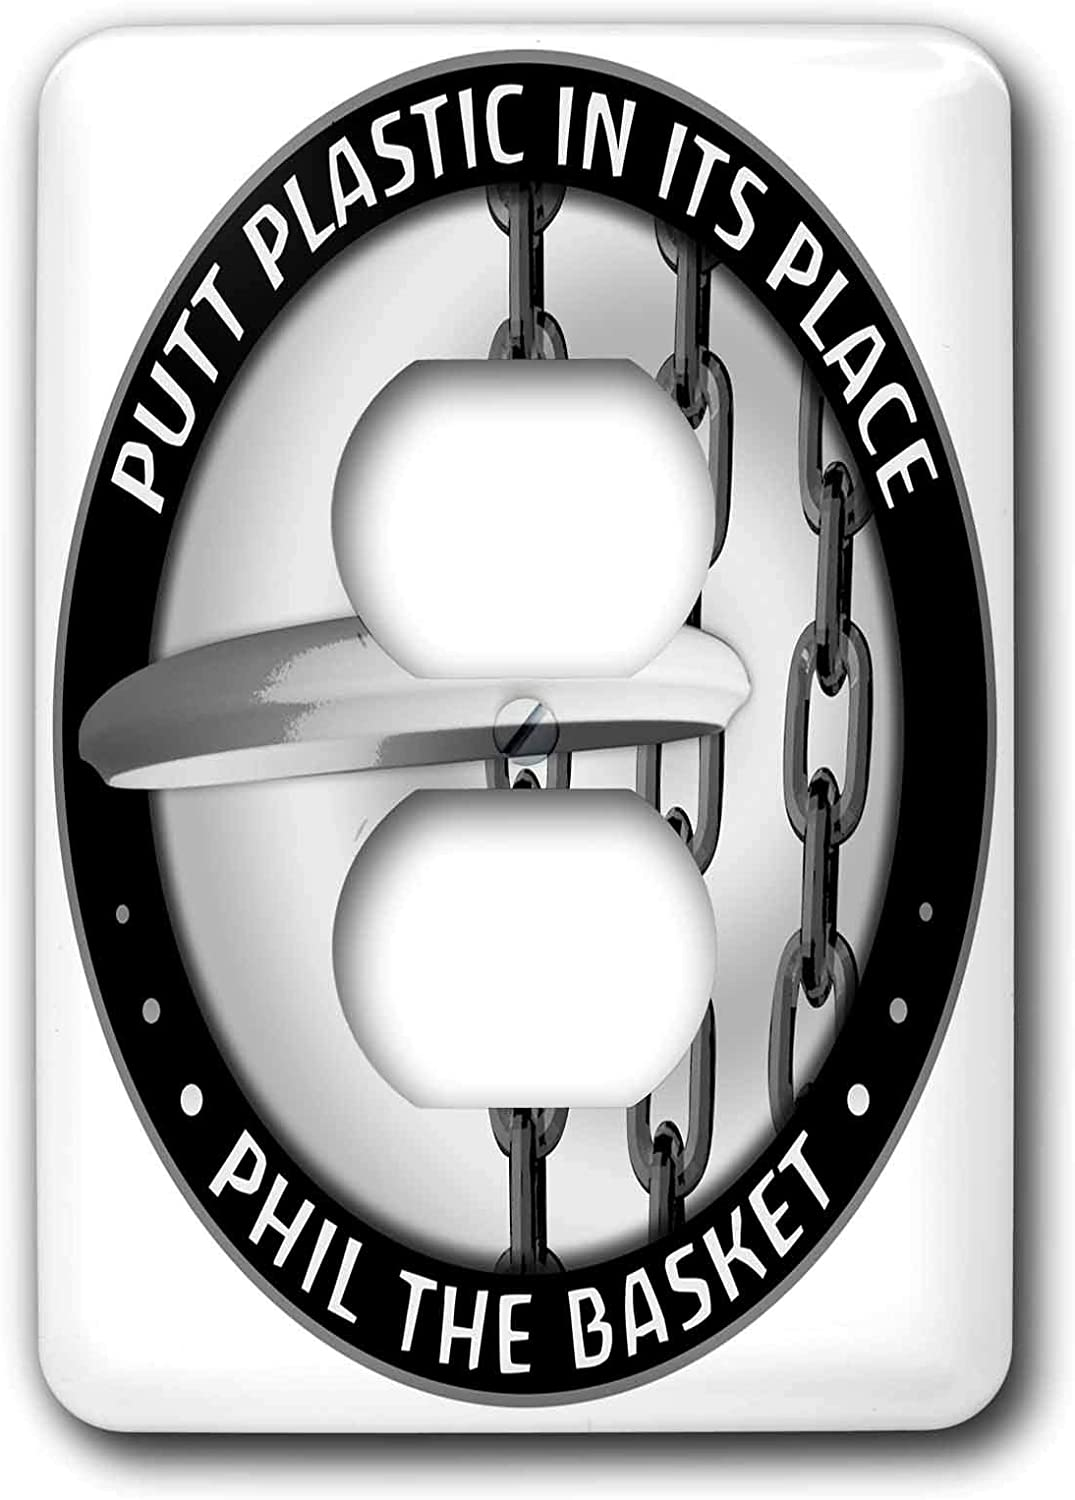 3drose Lsp 18150 6 Phil The Basket 2 Frisbee Disc Golf Putter Thrown Into The Chains Of A Basket 2 Plug Outlet Cover Outlet Plates Amazon Com